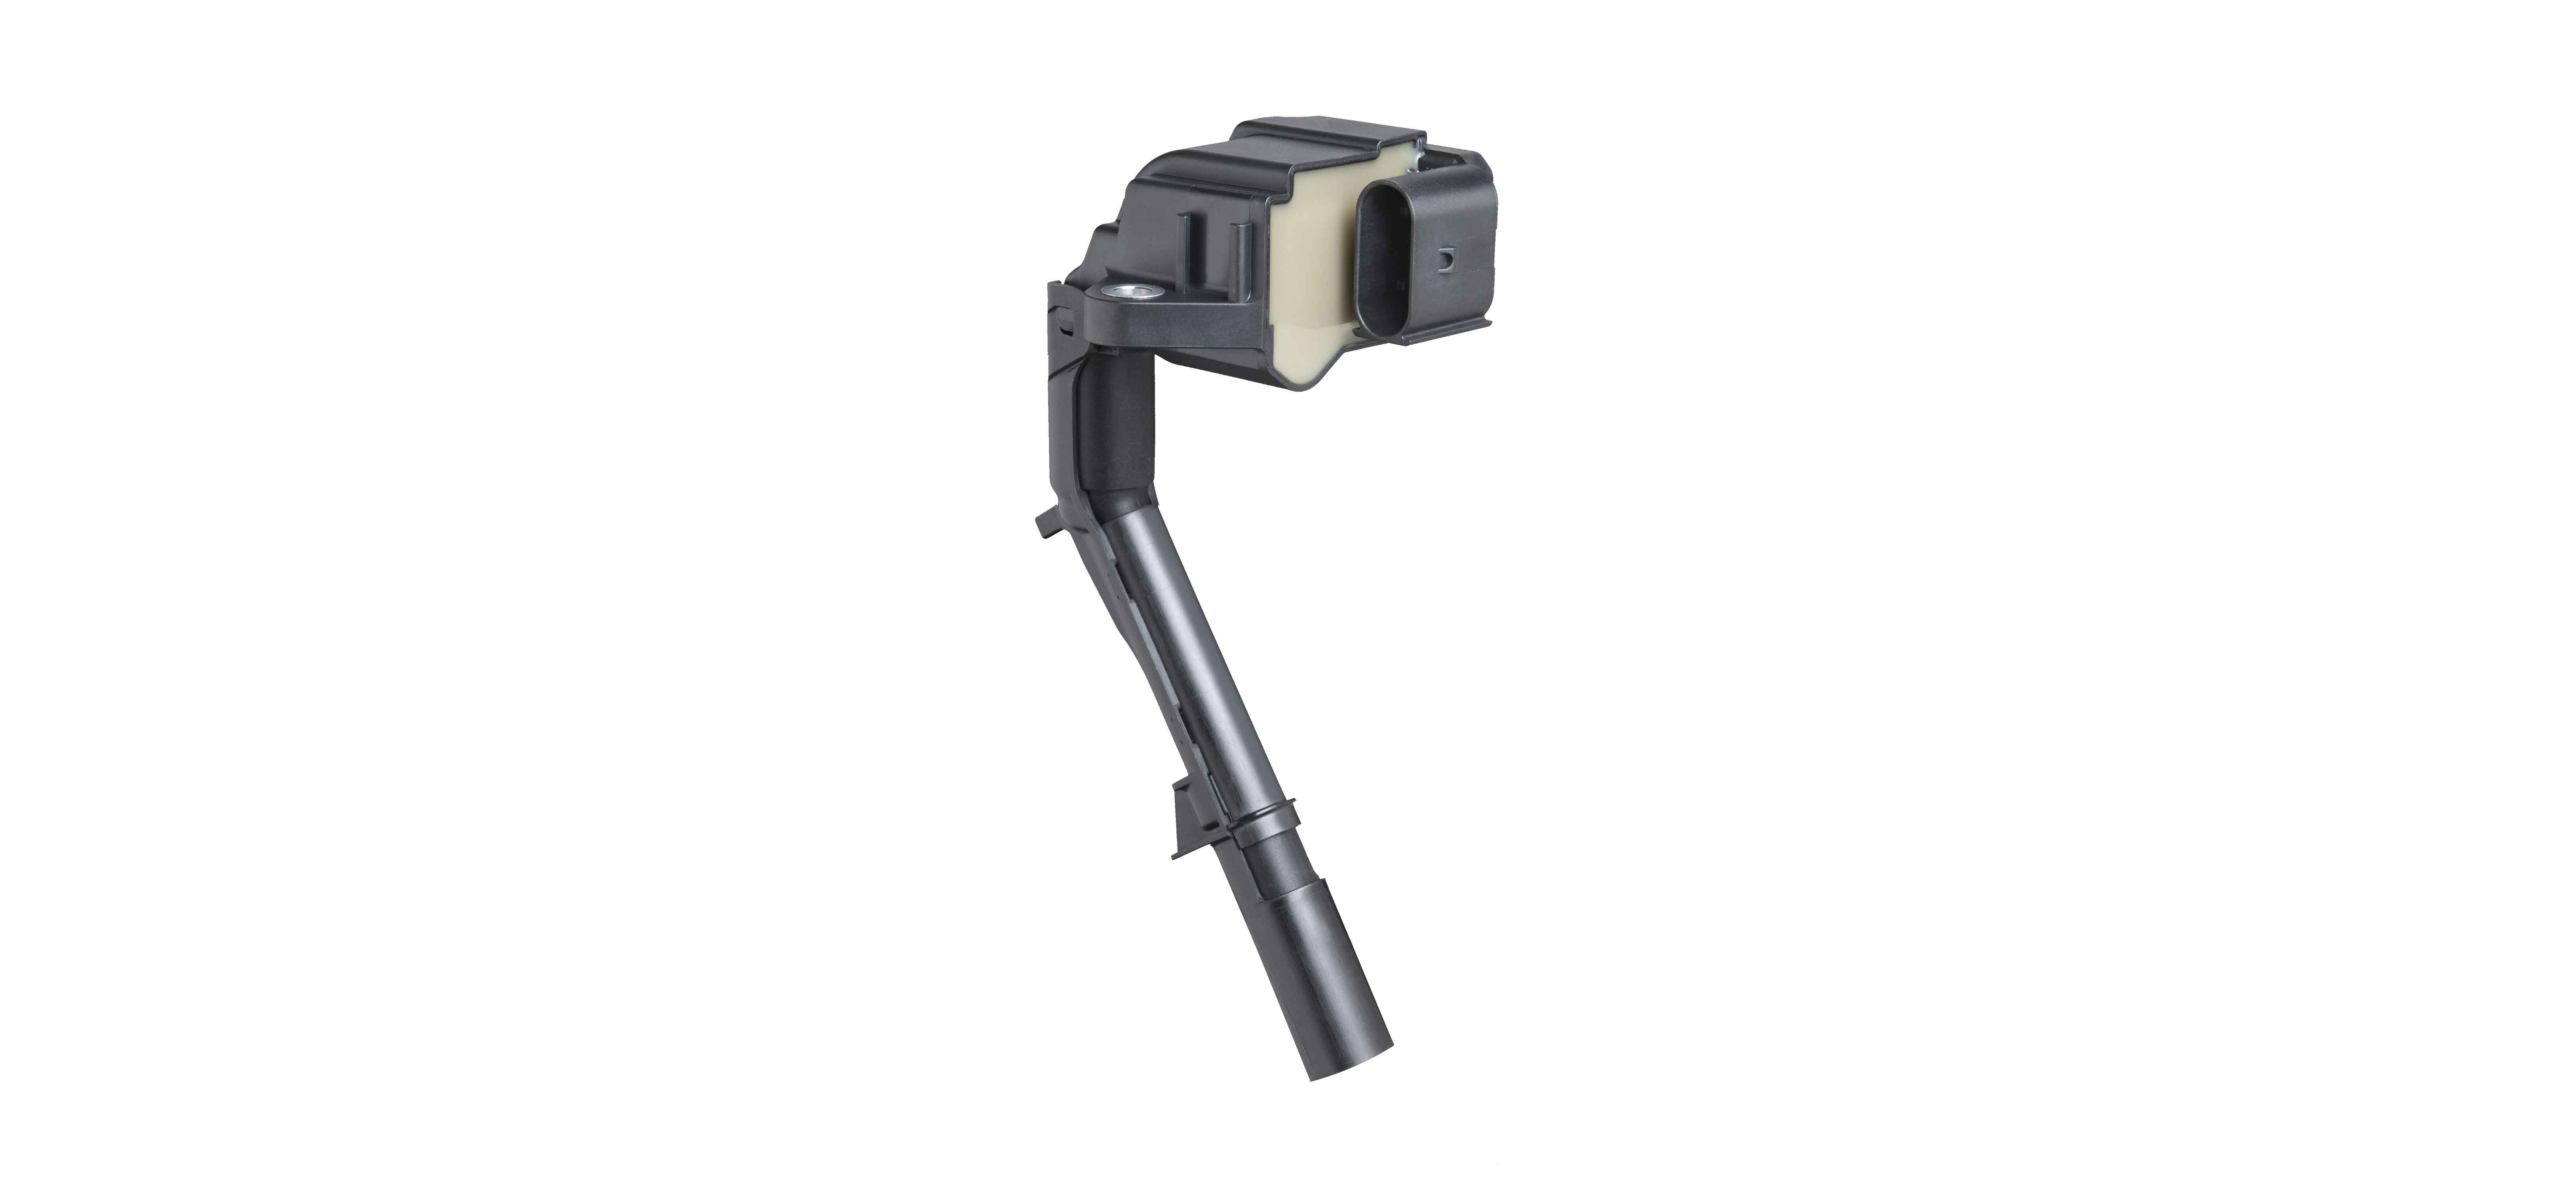 Delphi Technologies' new multi-charge ignition coils deliver OE technology with the benefits of independent aftermarket service